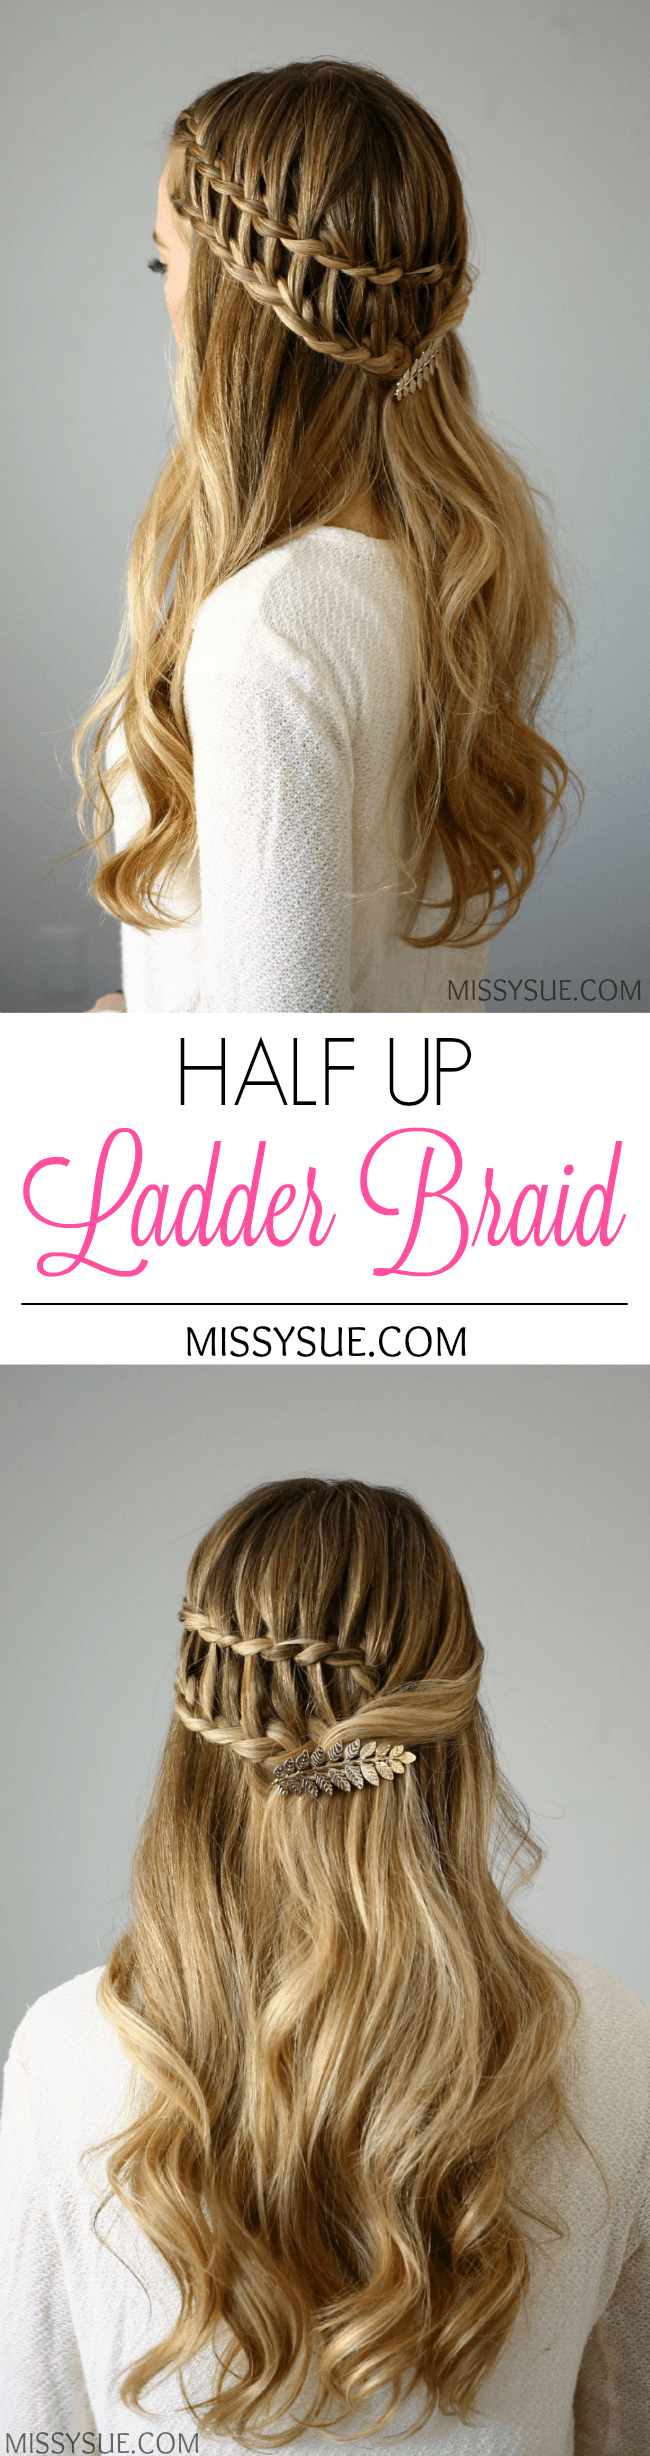 up ladder braid